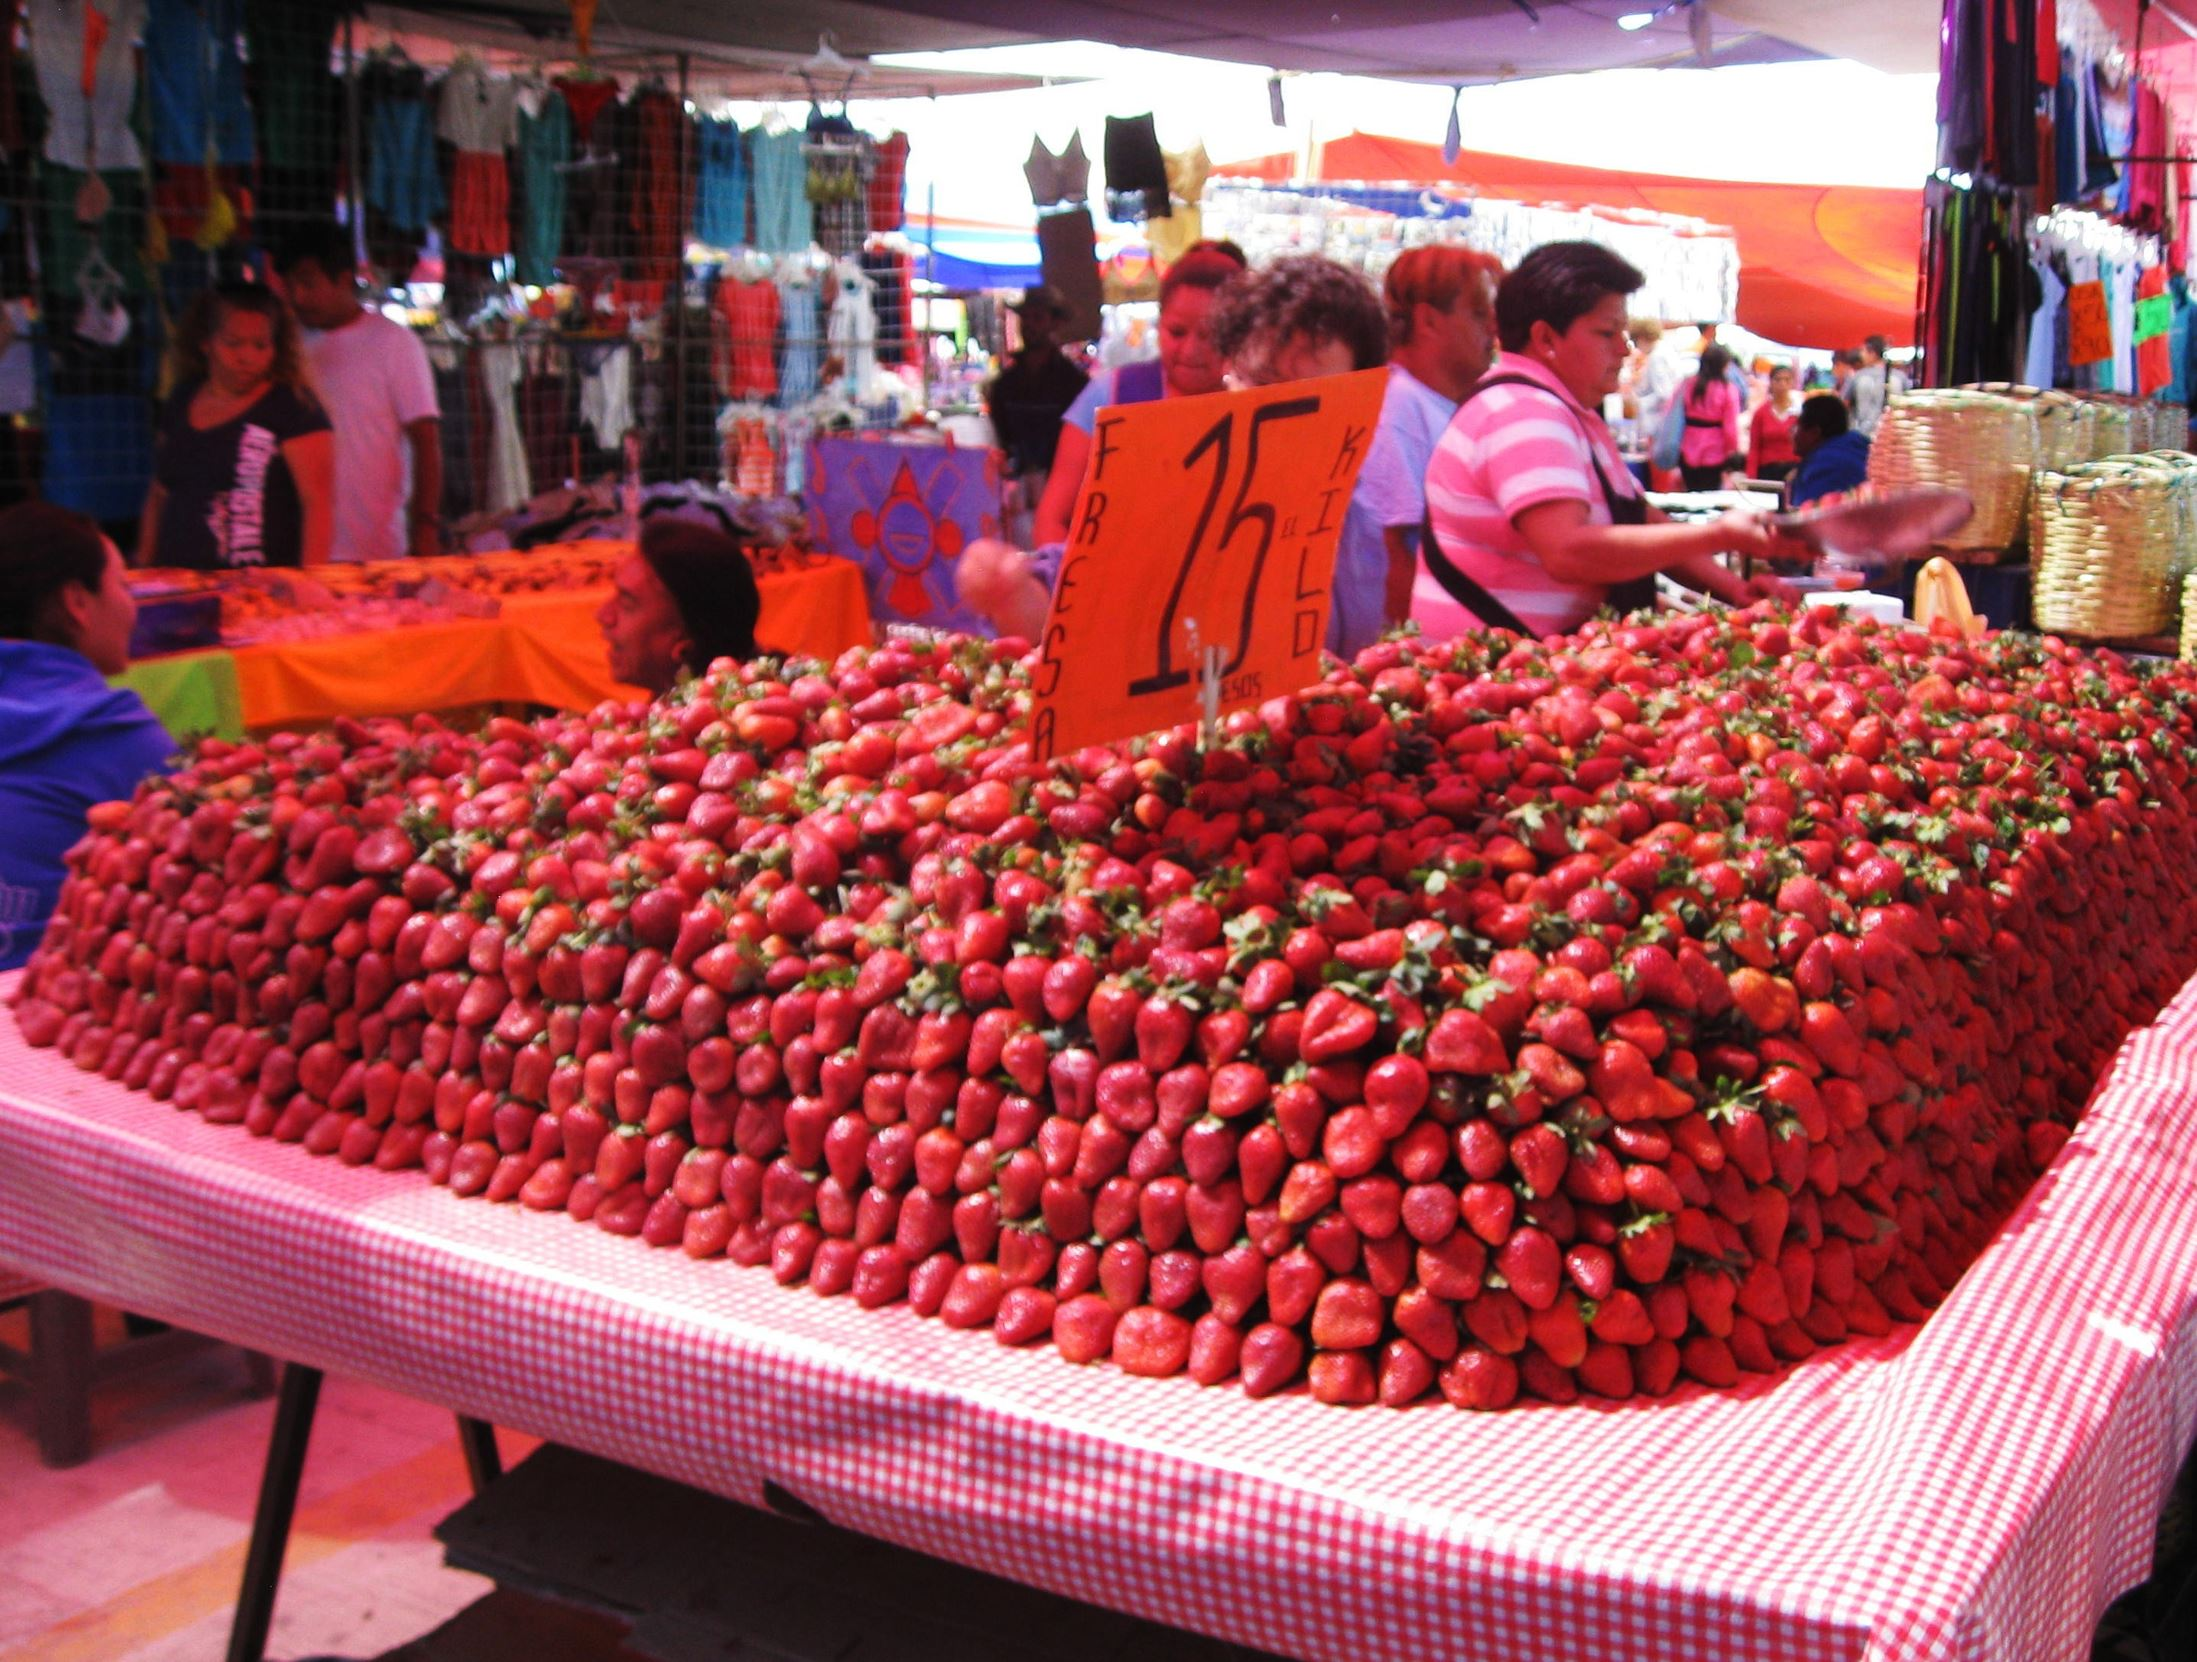 20140425hostrawberriesfood6882 Strawberries in the Tianguis del Martes farmers market in San Miguel de Allende.